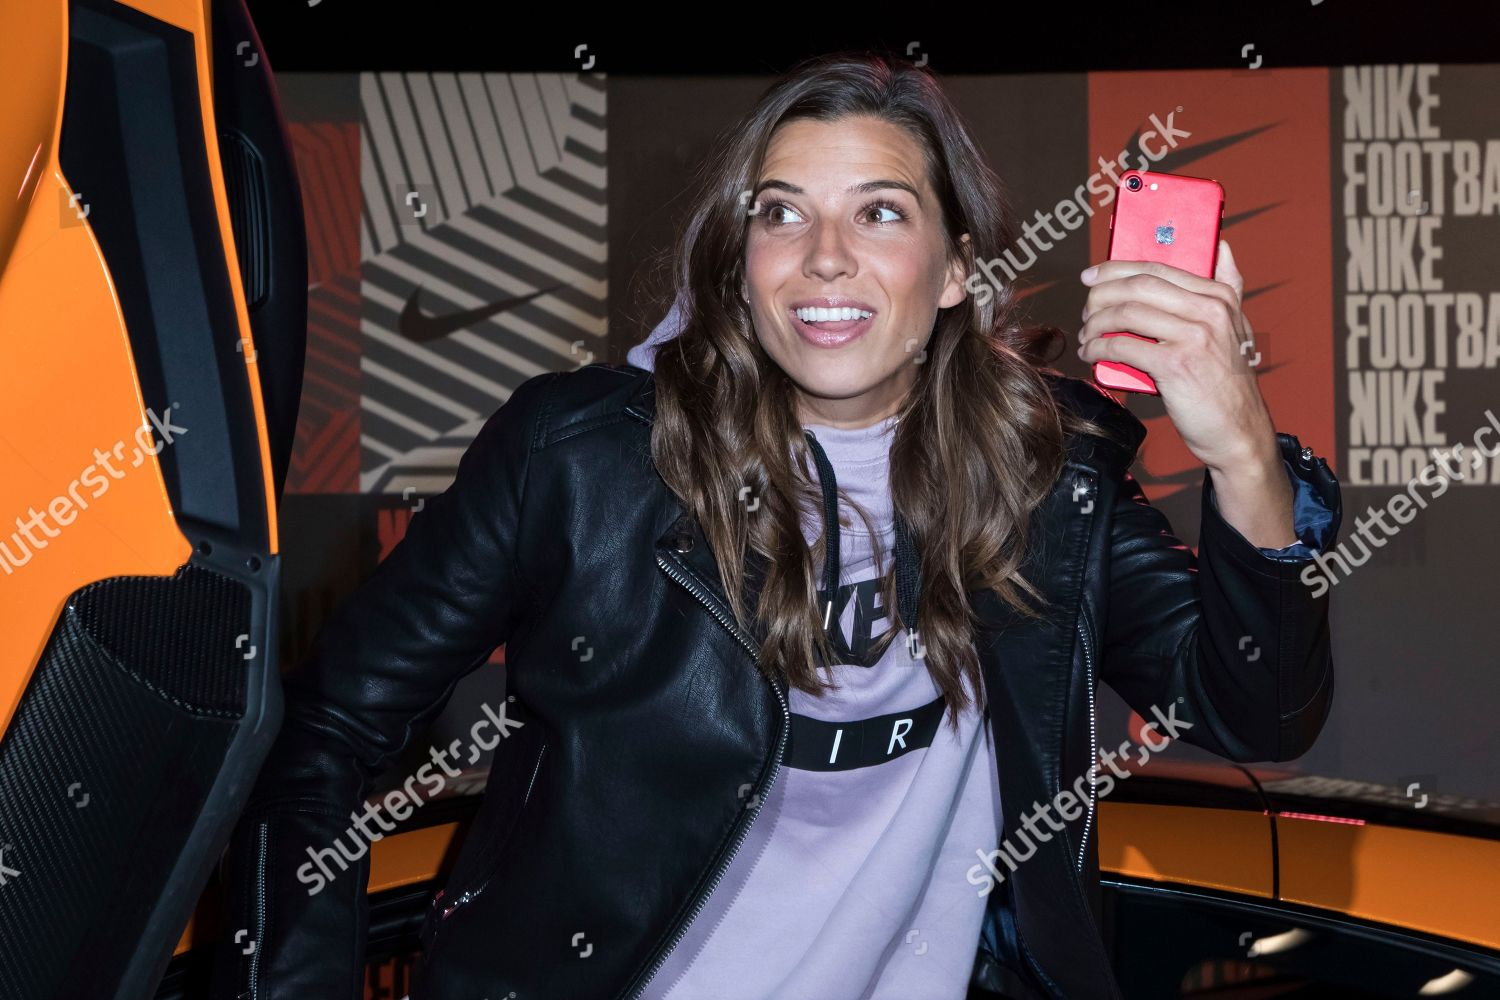 new styles 8ad71 eb8ca Tobin Heath poses photographers upon arrival Nike Editorial ...